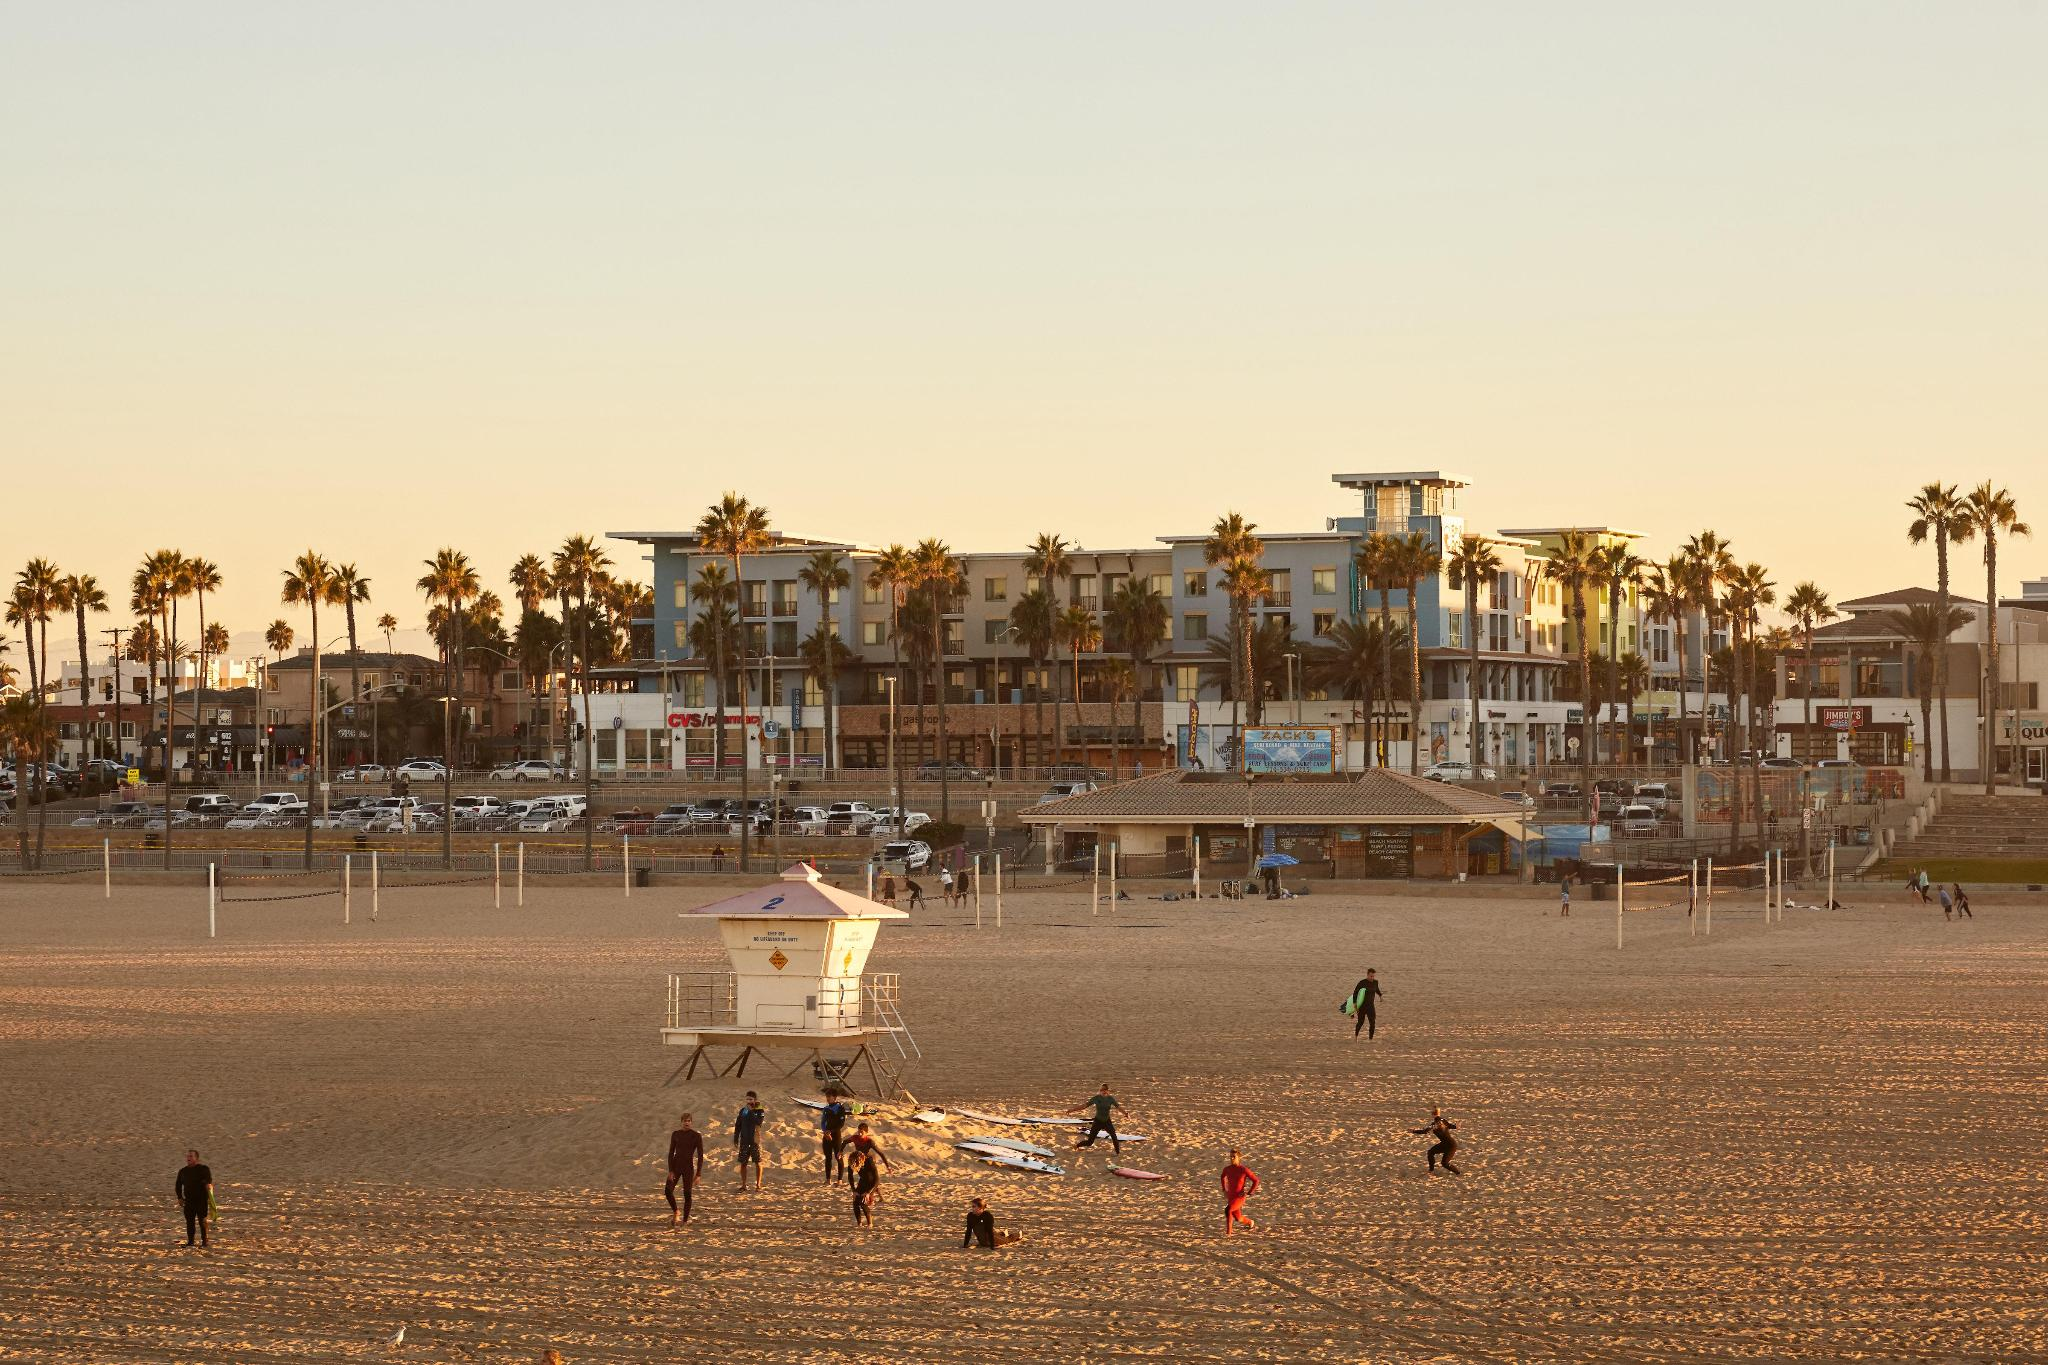 Kimpton Shorebreak Resort